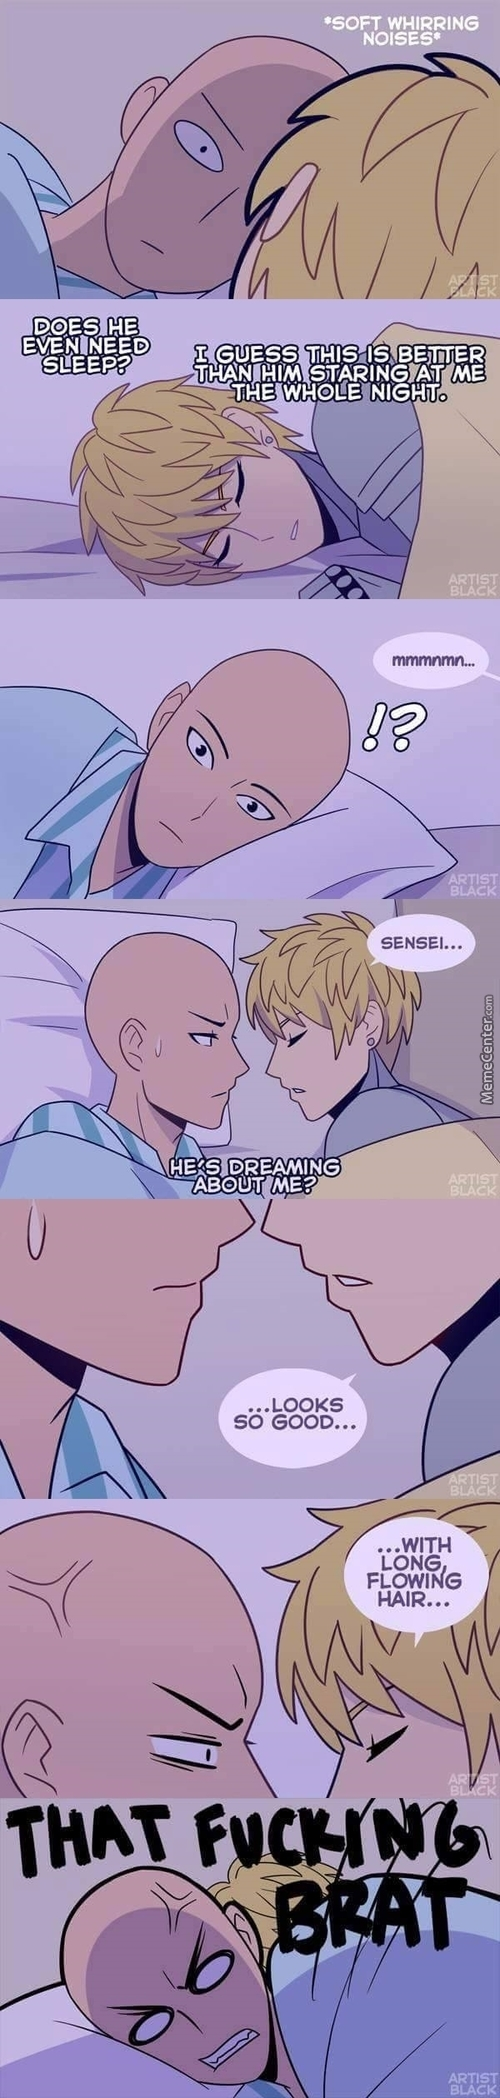 I Bet You Thought This Gonna Be Some Gay-Ass Comic But You Were Wrong, It's Just One Punch Man